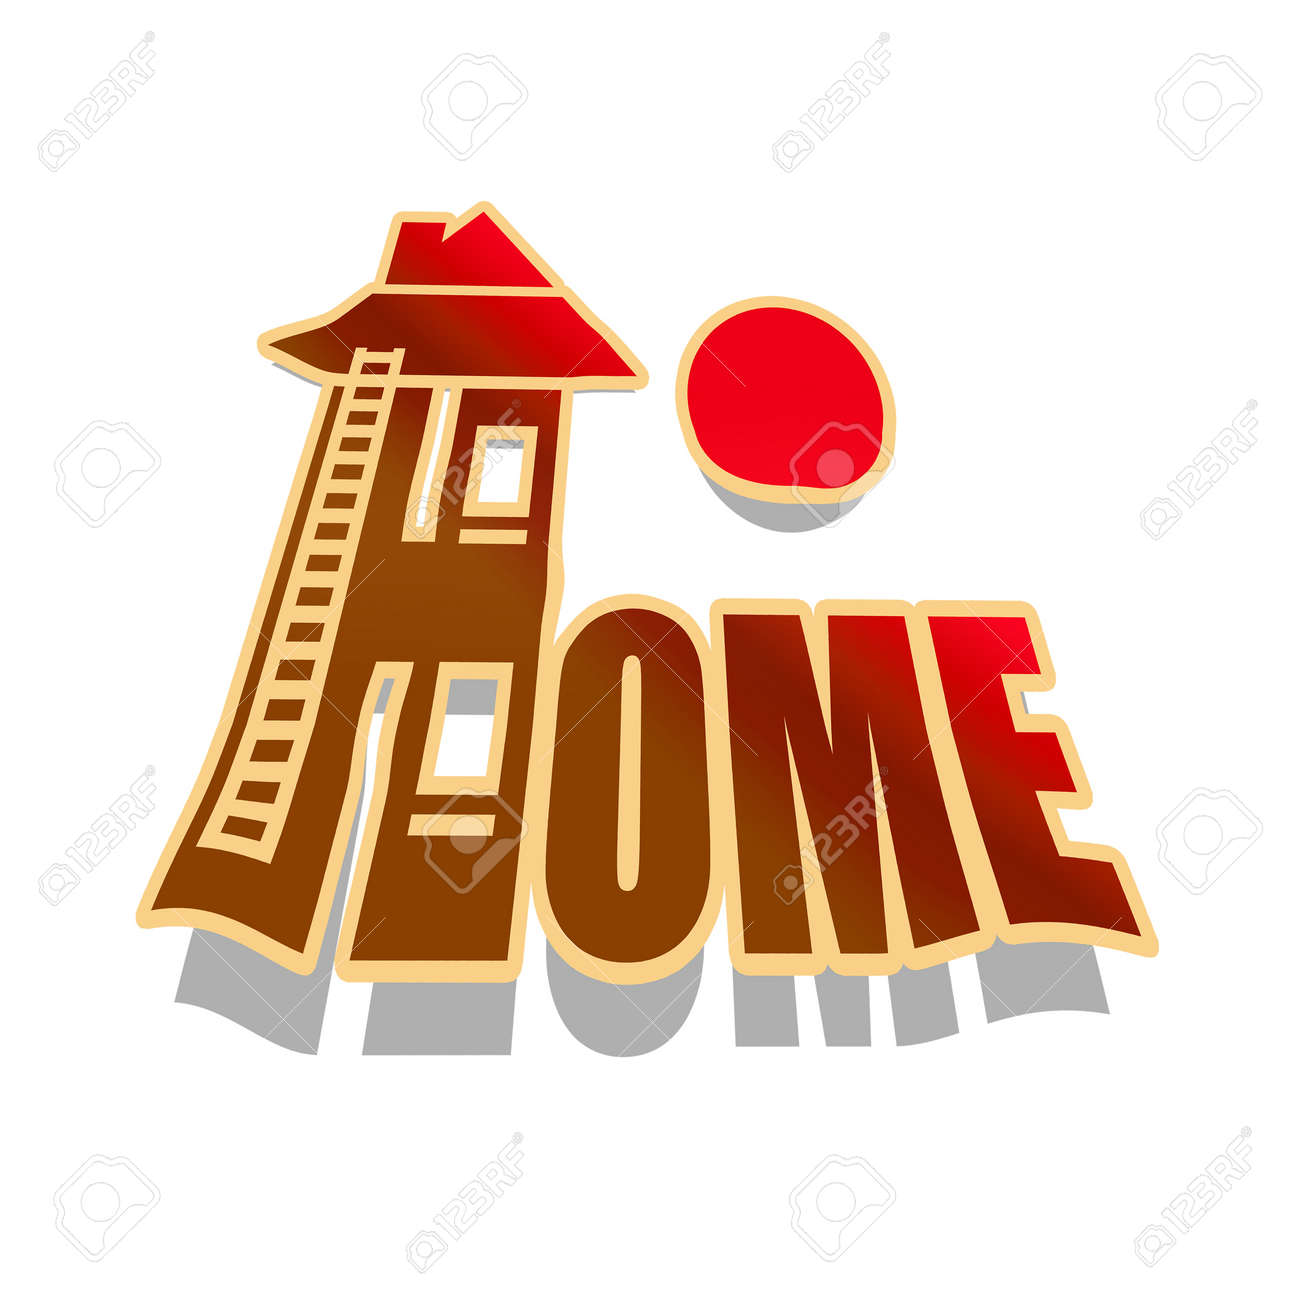 Home sweet home, house and sun illustration on white background Stock Photo - 18413190